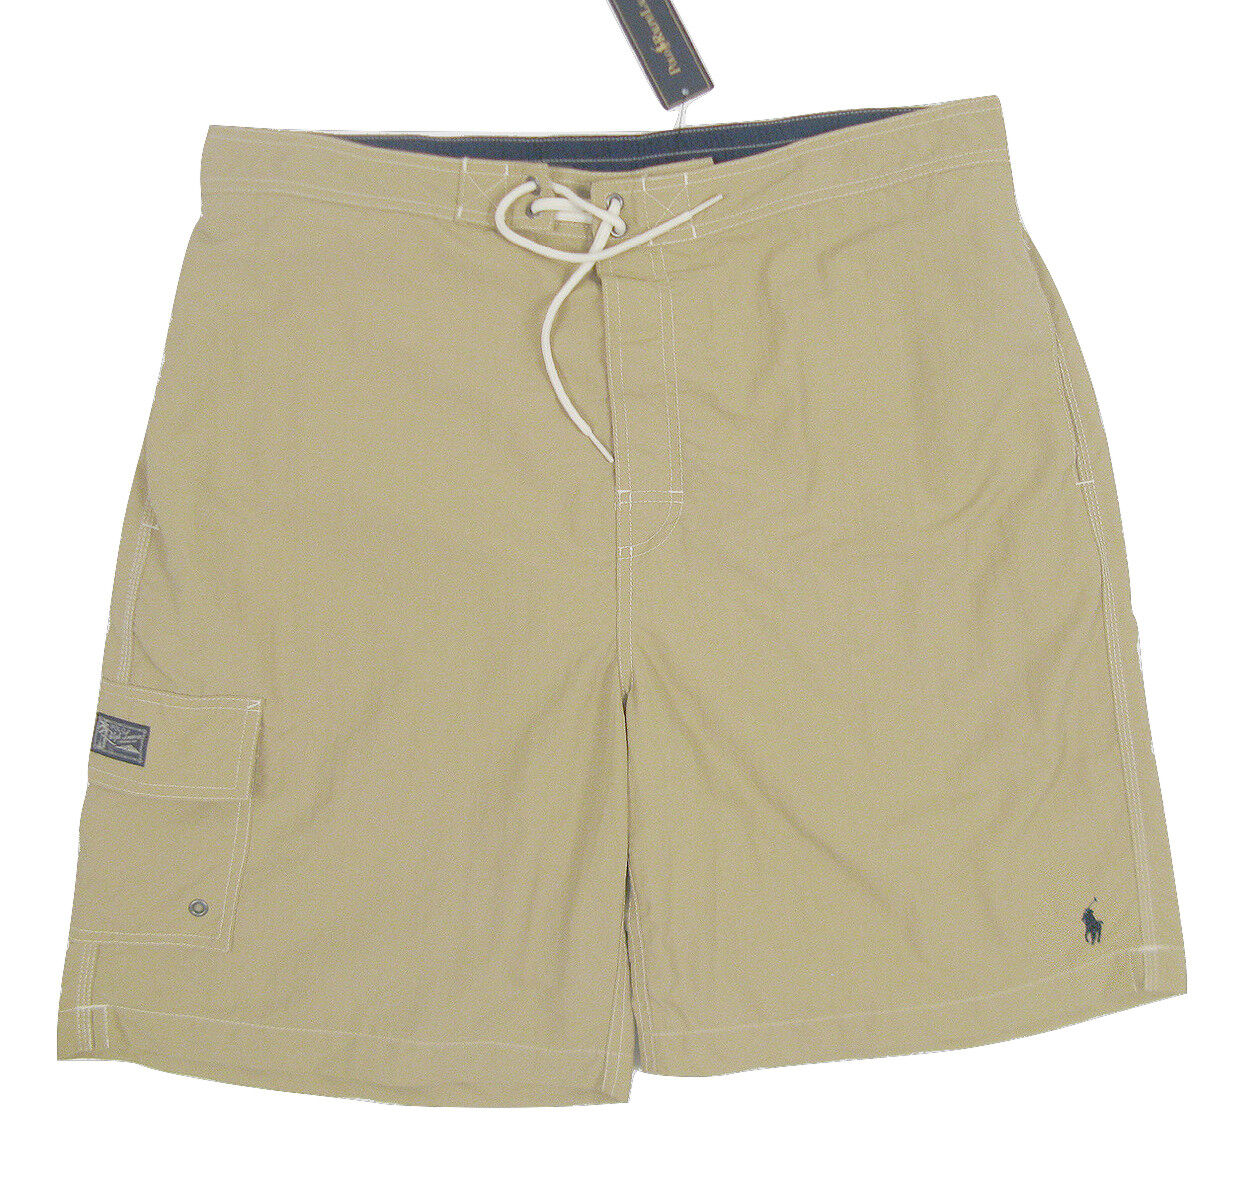 NEW Polo Ralph Lauren Swim Shorts (Trunks) (Bathing Suit)   Polo Player on Front